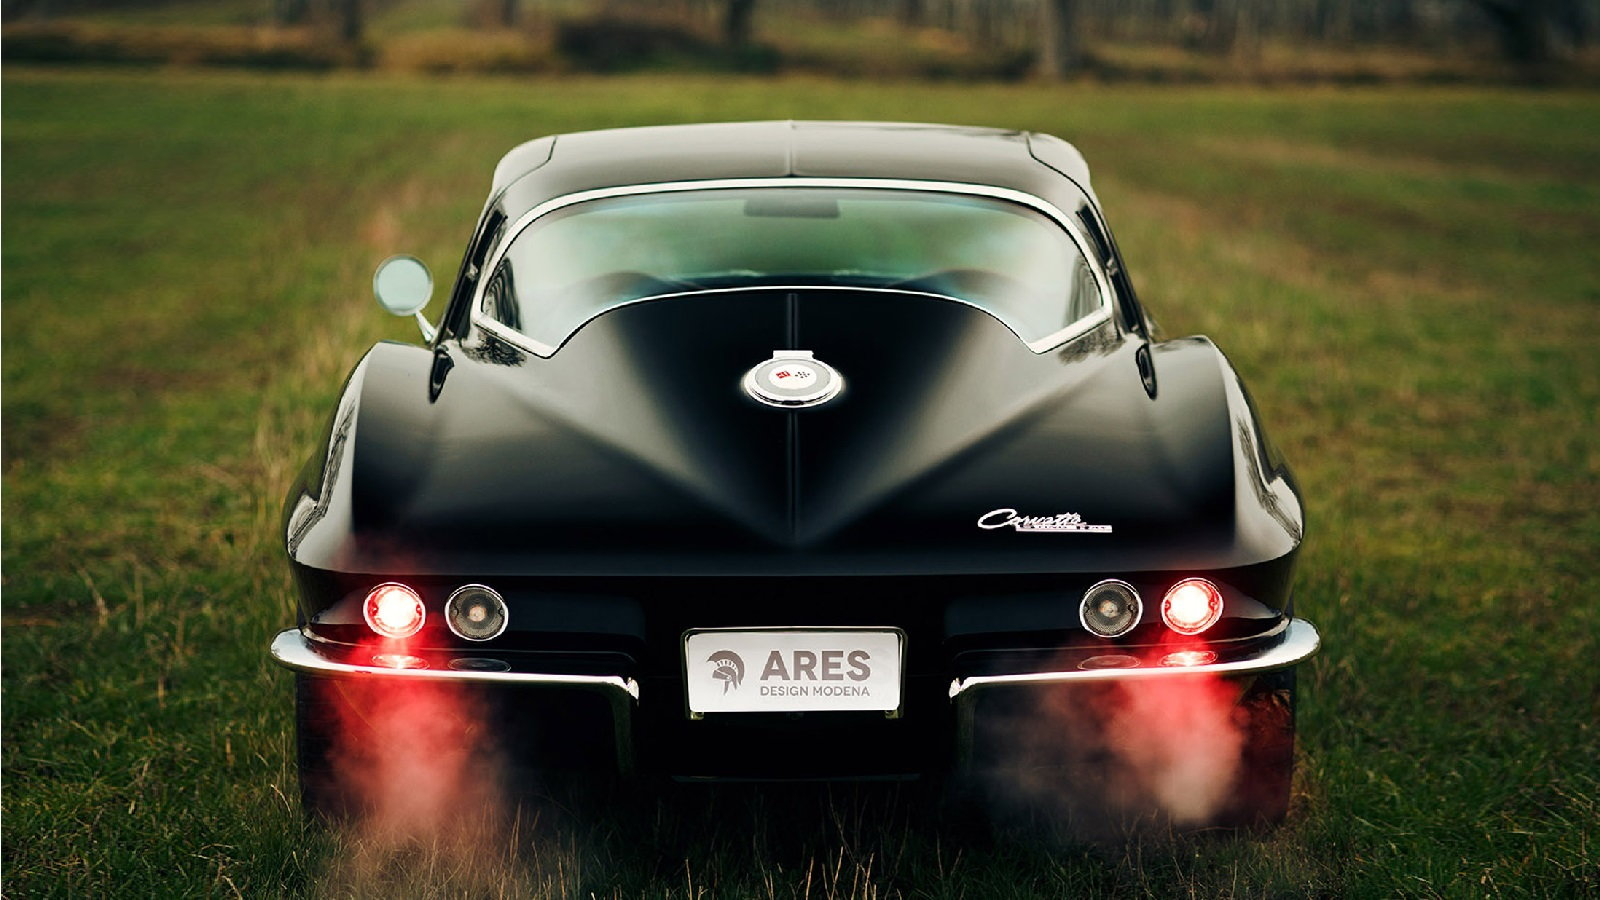 ARES Gives New Life to 1964 C2 with 525HP!